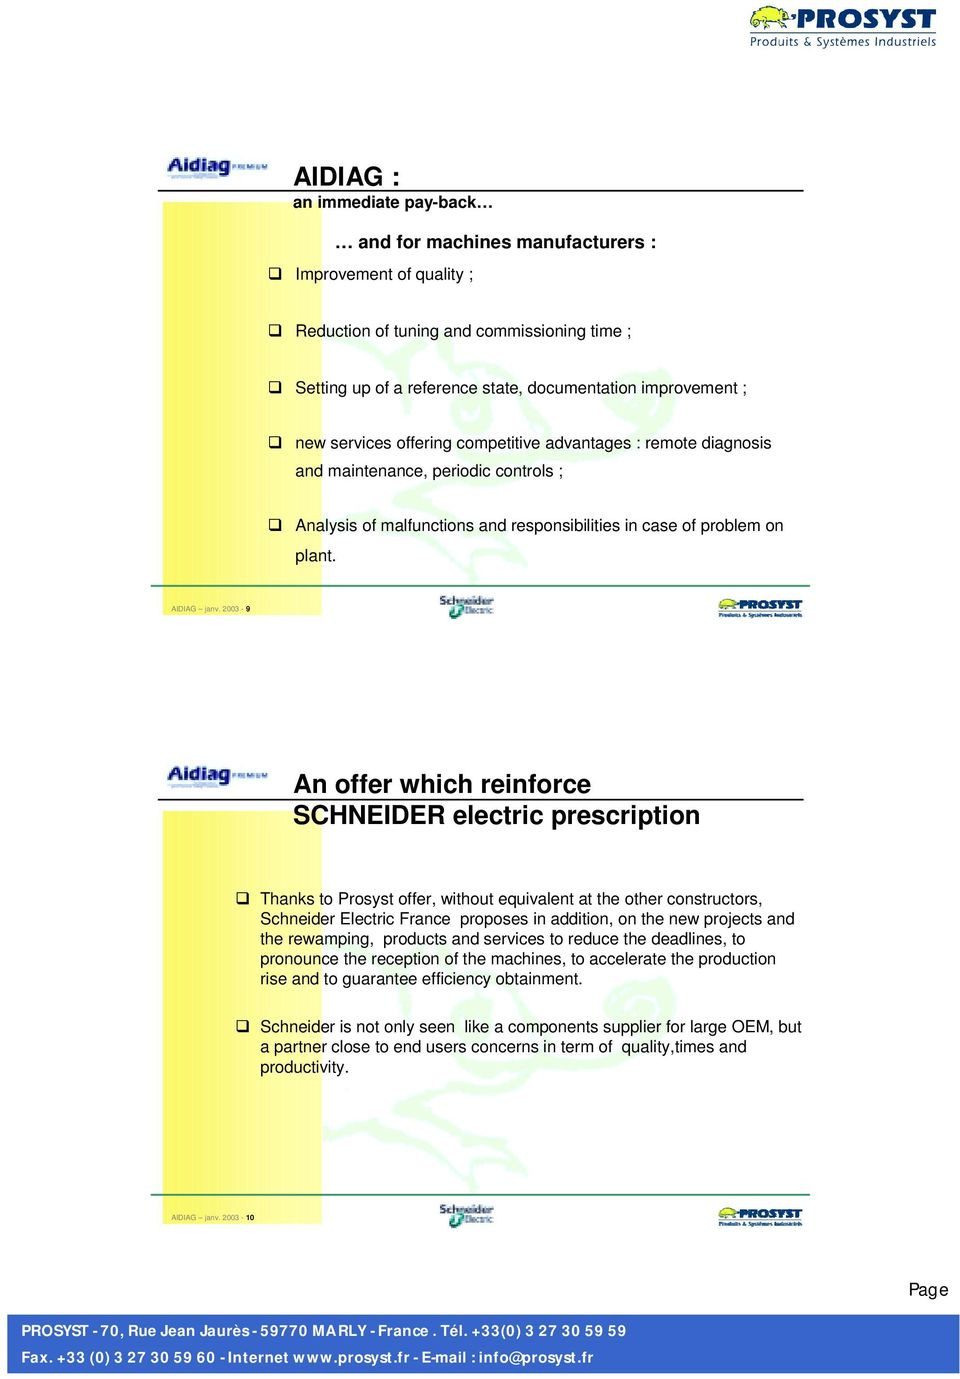 2003-9 An offer which reinforce SCHNEIDER electric prescription Thanks to Prosyst offer, without equivalent at the other constructors, Schneider Electric France proposes in addition, on the new